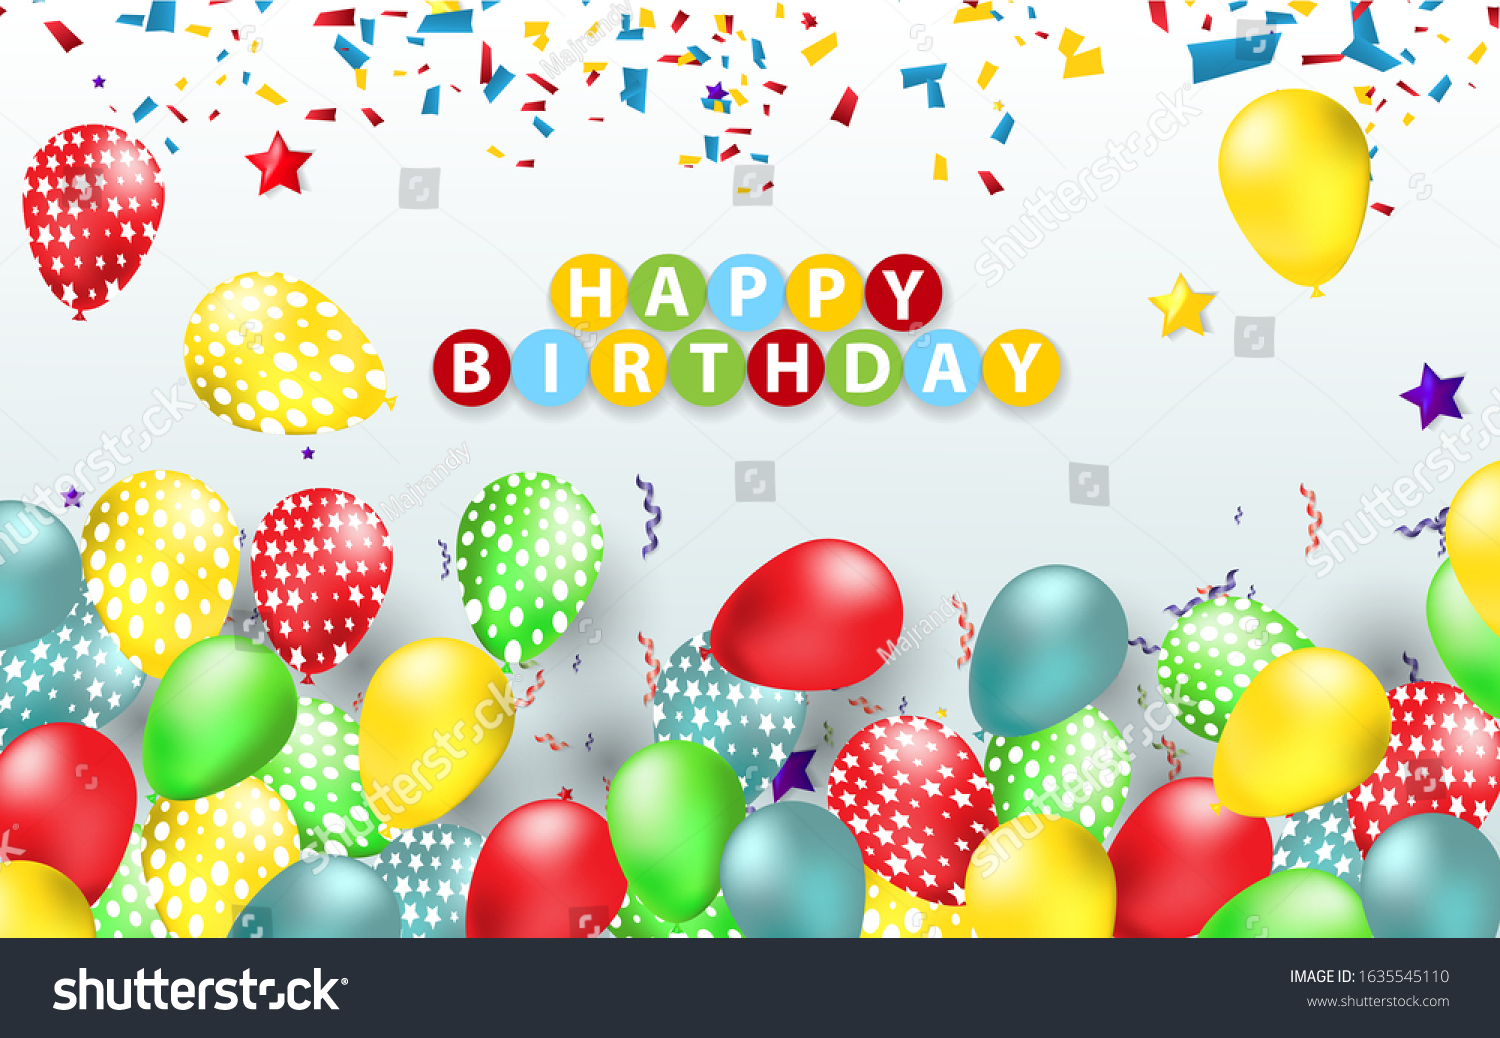 Simple Background Birthday Wishes Balloon Confetti Stock Vector Royalty Free 1635545110,Low Cost Minimalist House Design Interior